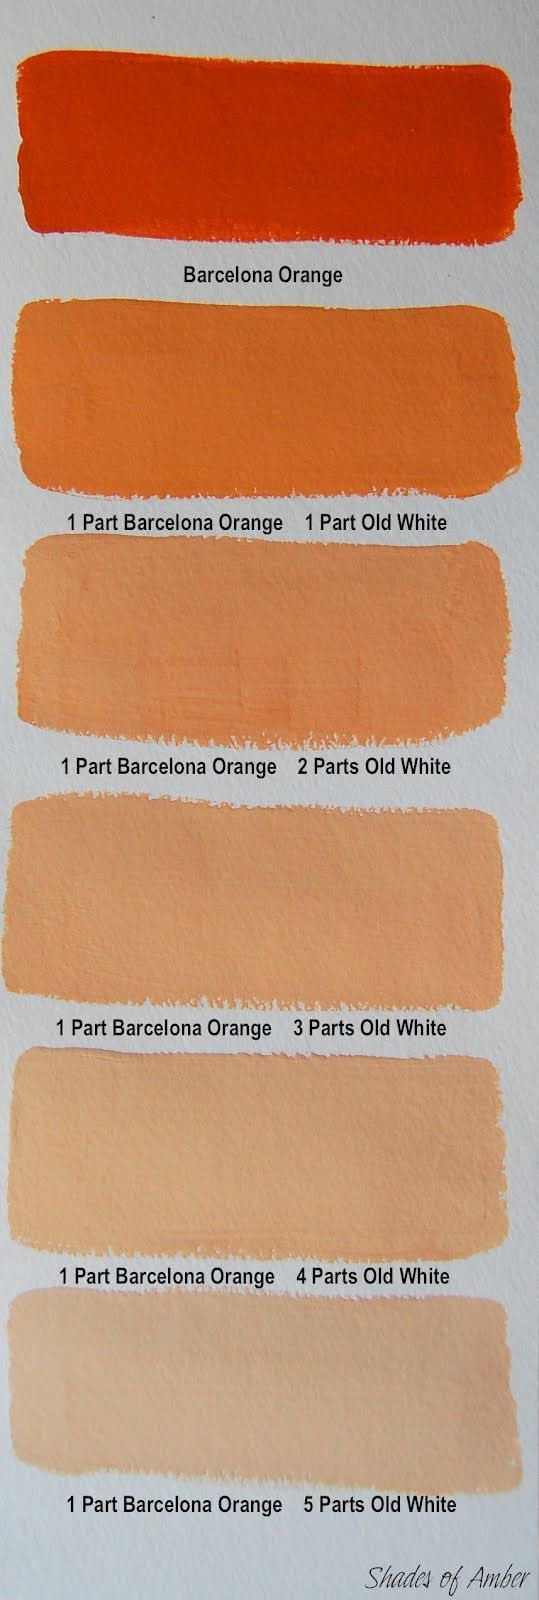 39 Best What We Sell Images On Pinterest Painted Furniture Tips Martha Ivory Top Leux Studio L Shades Of Amber Chalk Paint Color Theory Barcelona Orange